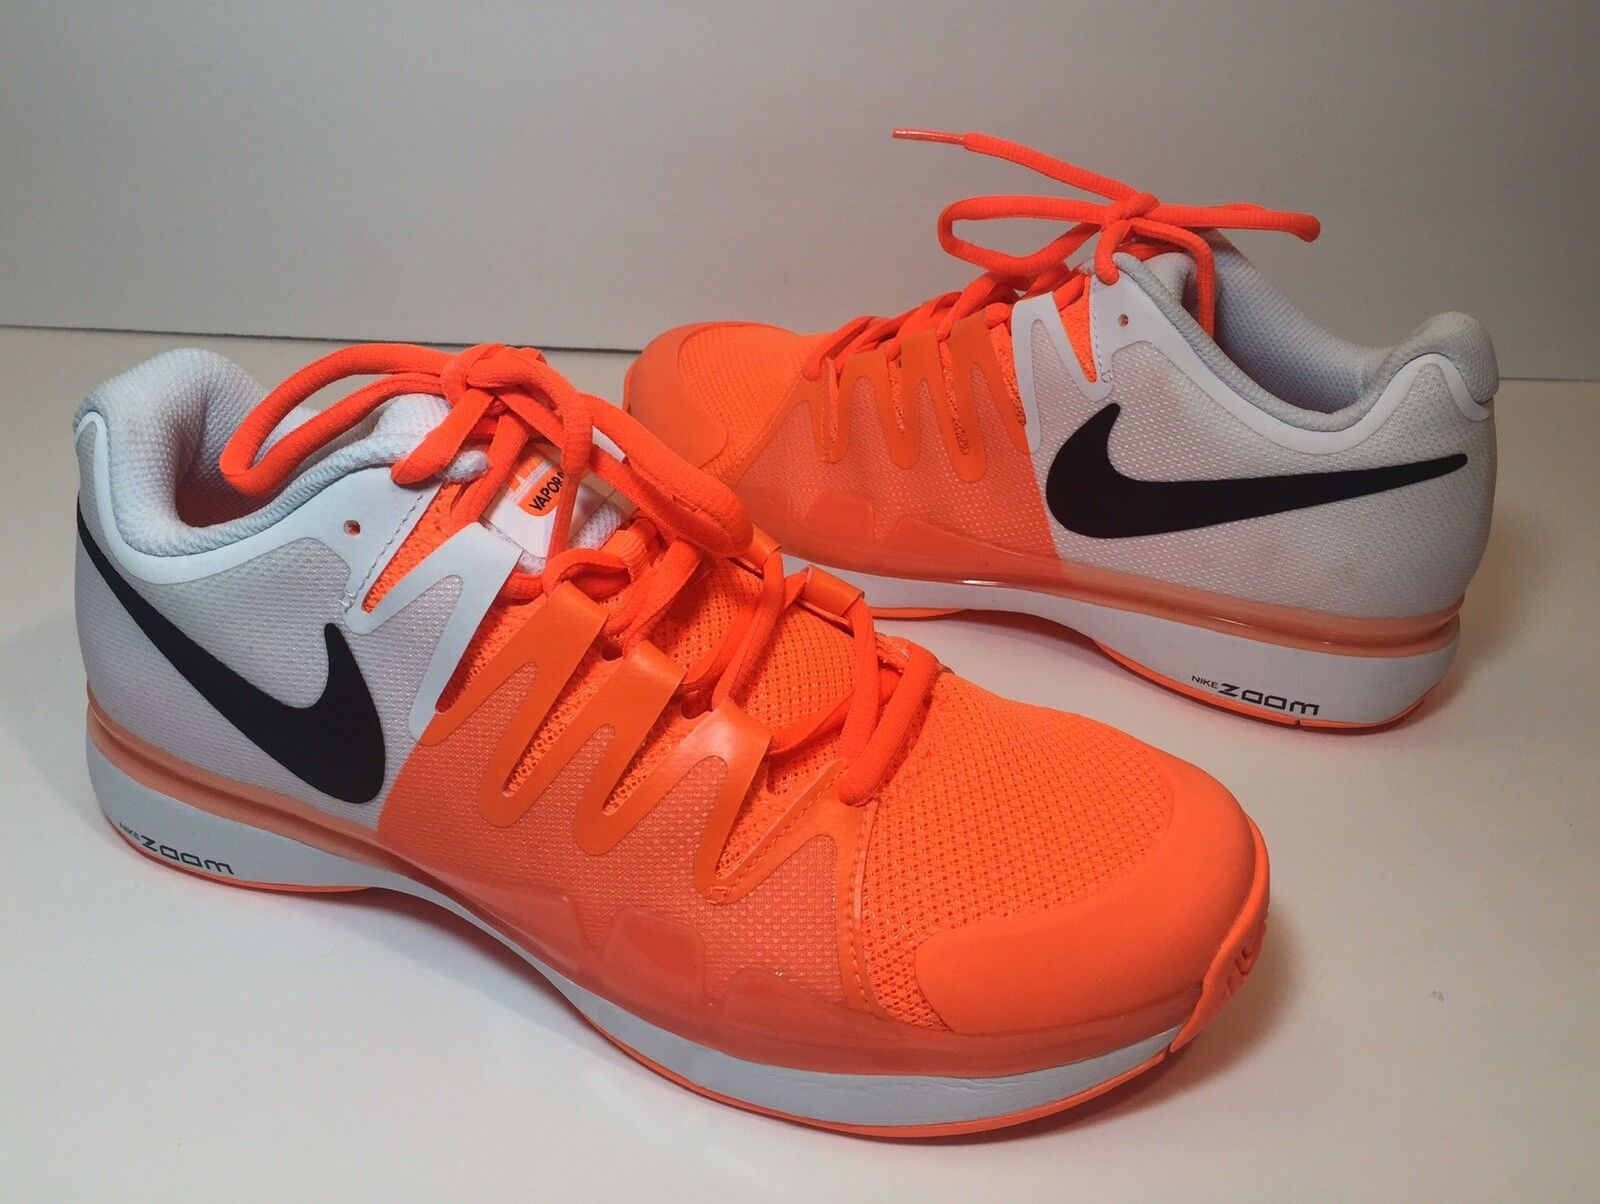 NIKE NEW ZOOM VAPOR 9.5 TOUR MENS SNEAKERS TENNIS SHOES orange WHITE BLACK 6 1 2